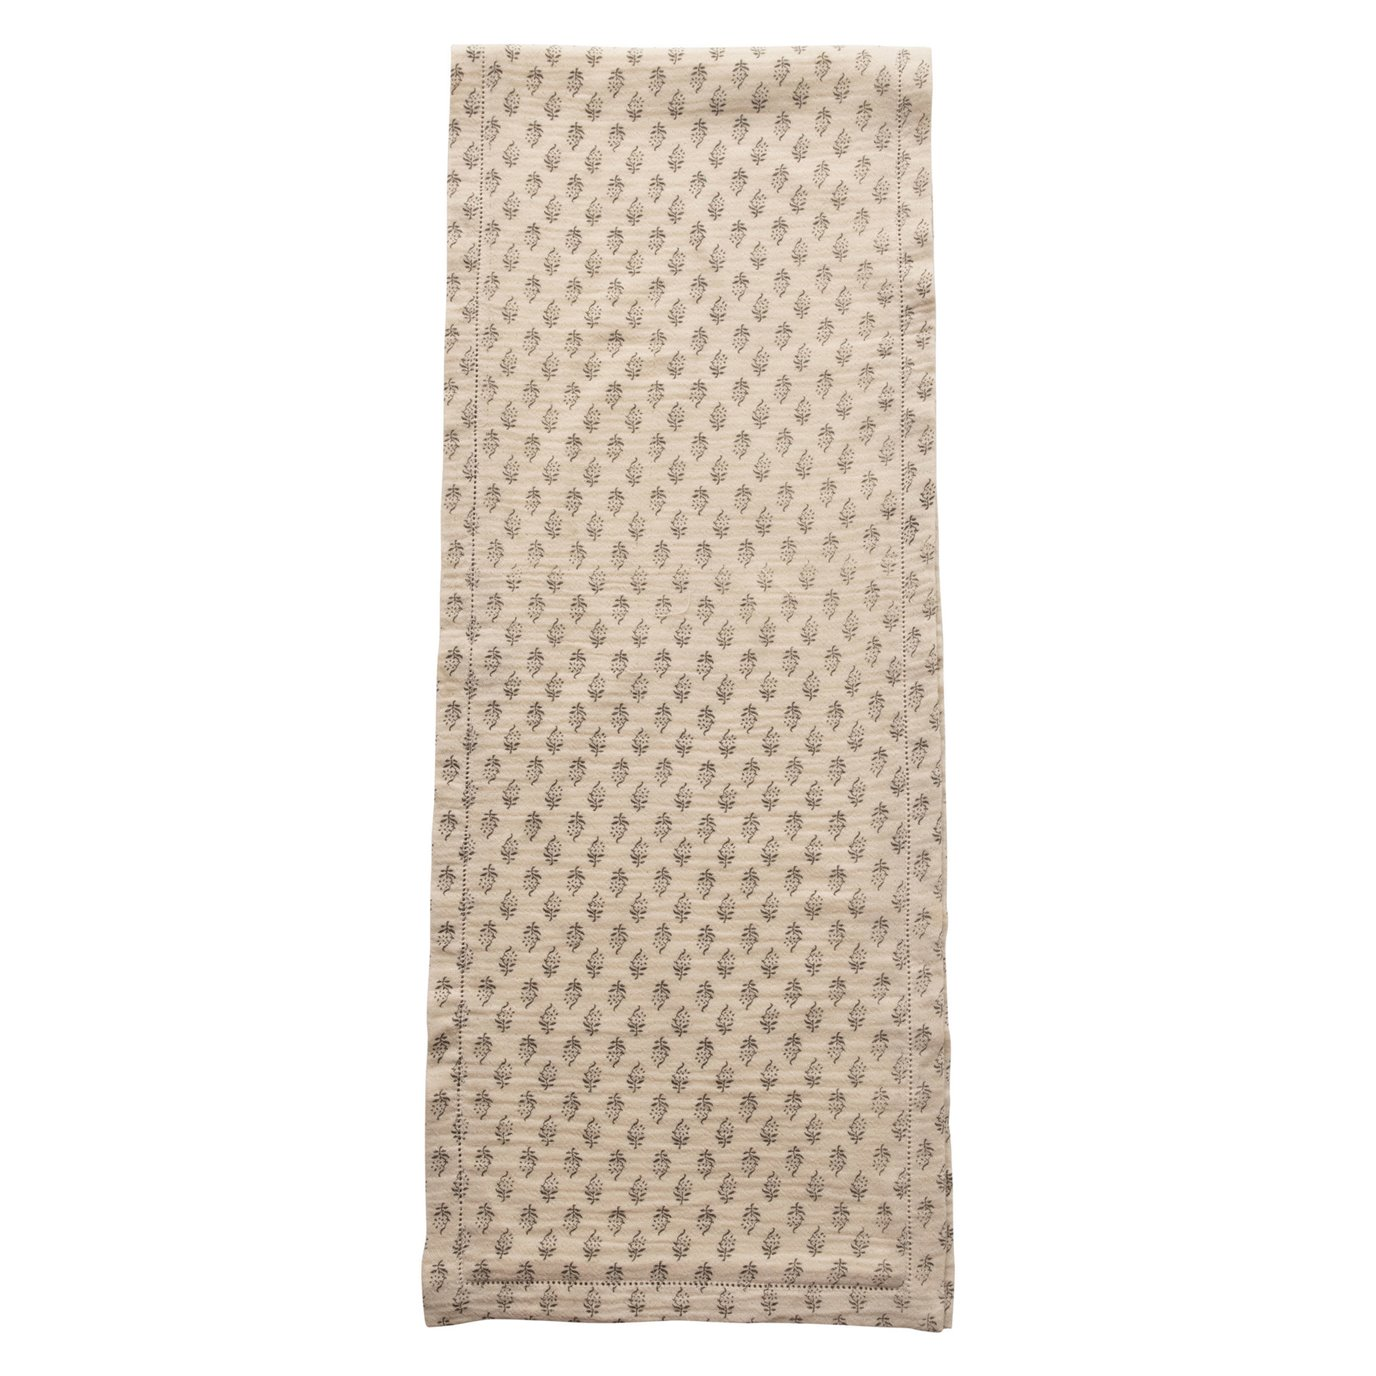 Cotton Table Runner with Printed Floral Pattern, Grey & Cream Color